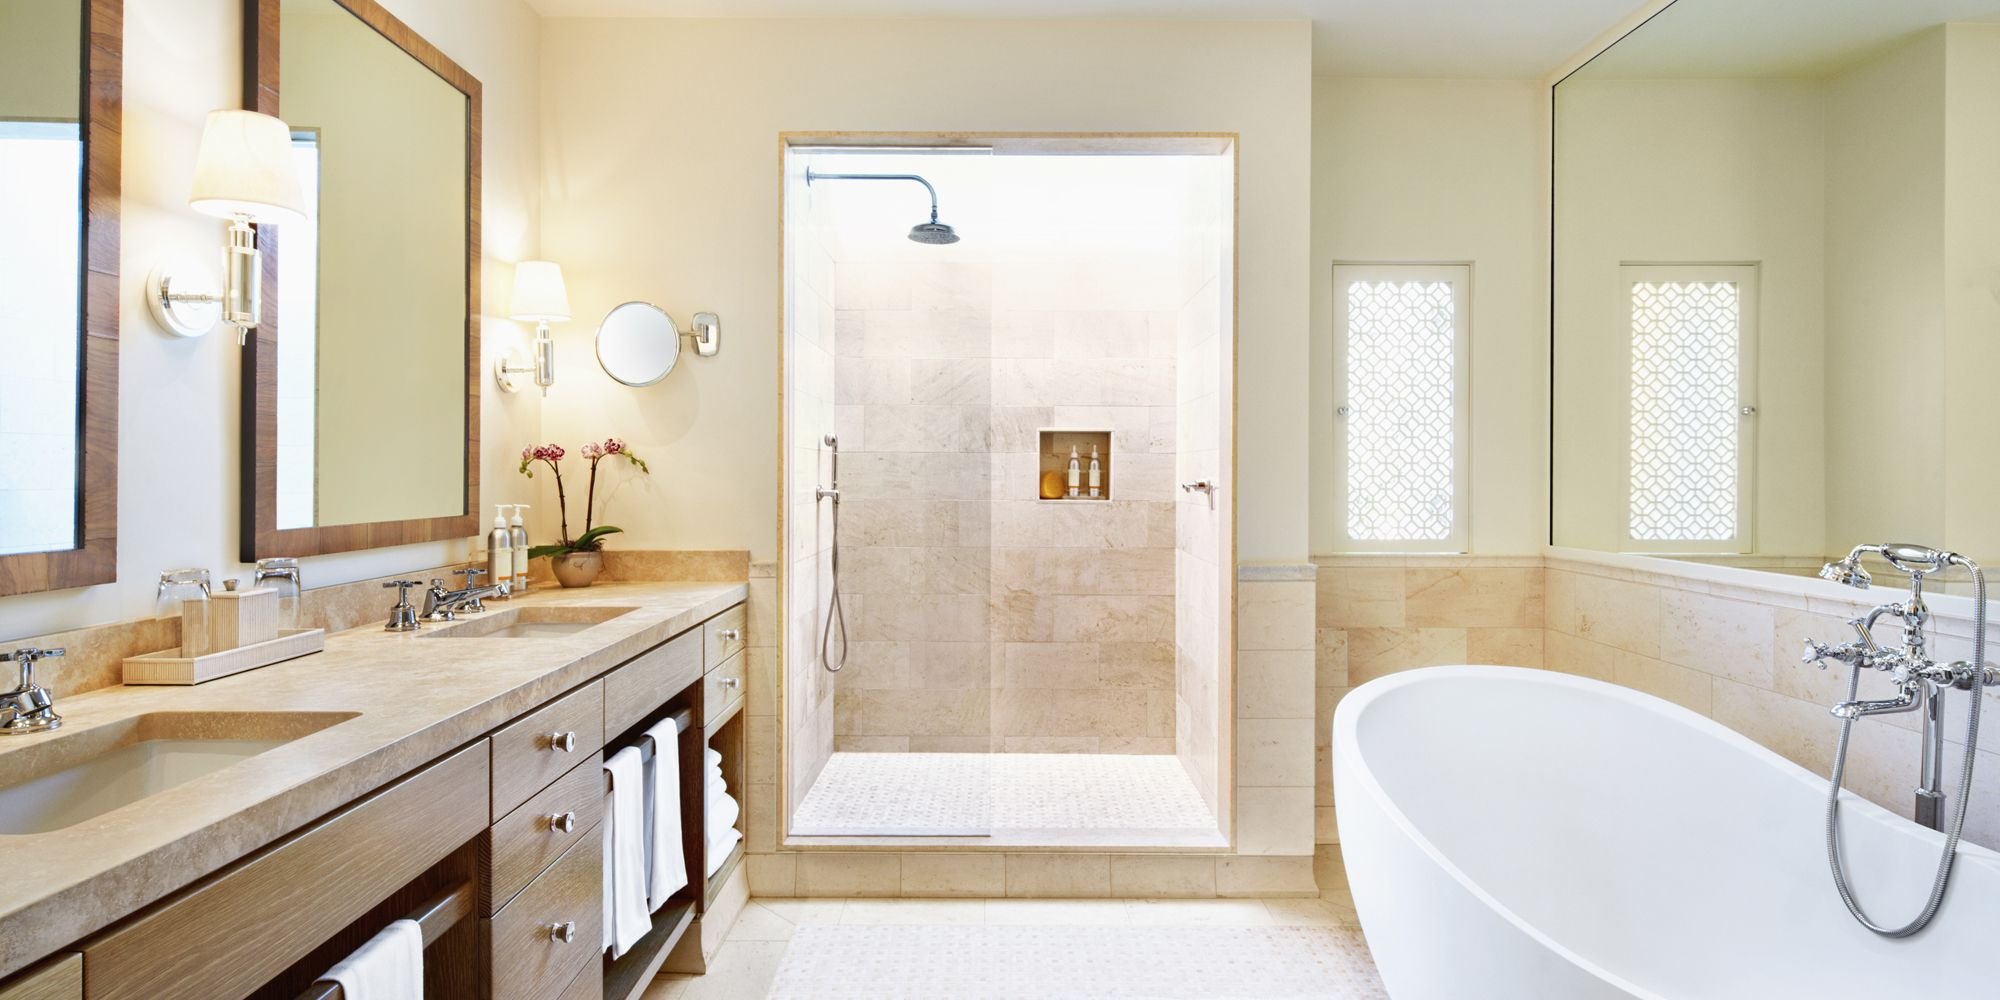 Best Way To Clean Glass Shower Doors How To Clean Shower Doors